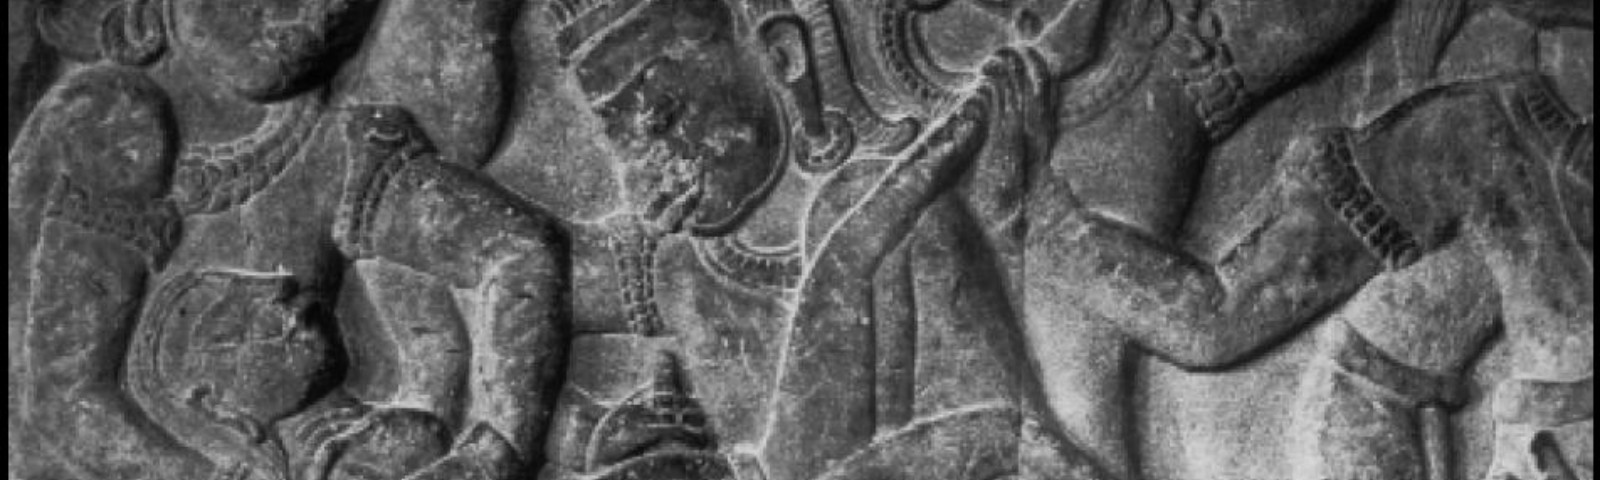 Ancient relief carving showing a method of abortion.